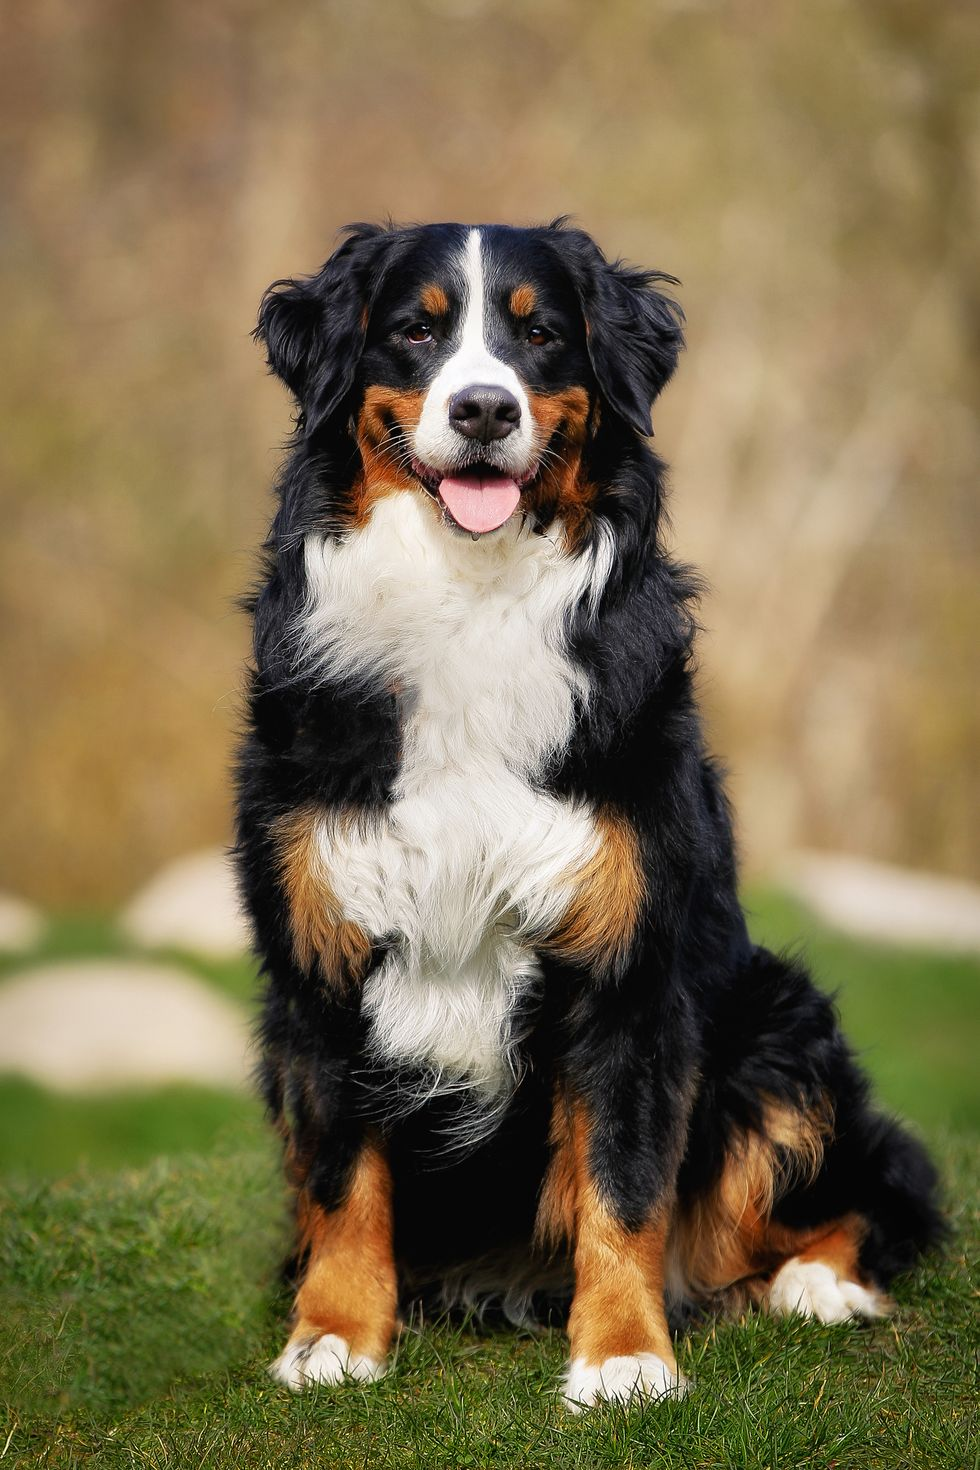 Best Large Dog Breeds ,extra large dogs for adoption,large dog breeds alphabetical,extra large dog breeds pictures,20 largest dog breeds,top 20 large dog breeds,extra large dog houses for outdoors,large dog breeds a z,list of large dog breeds